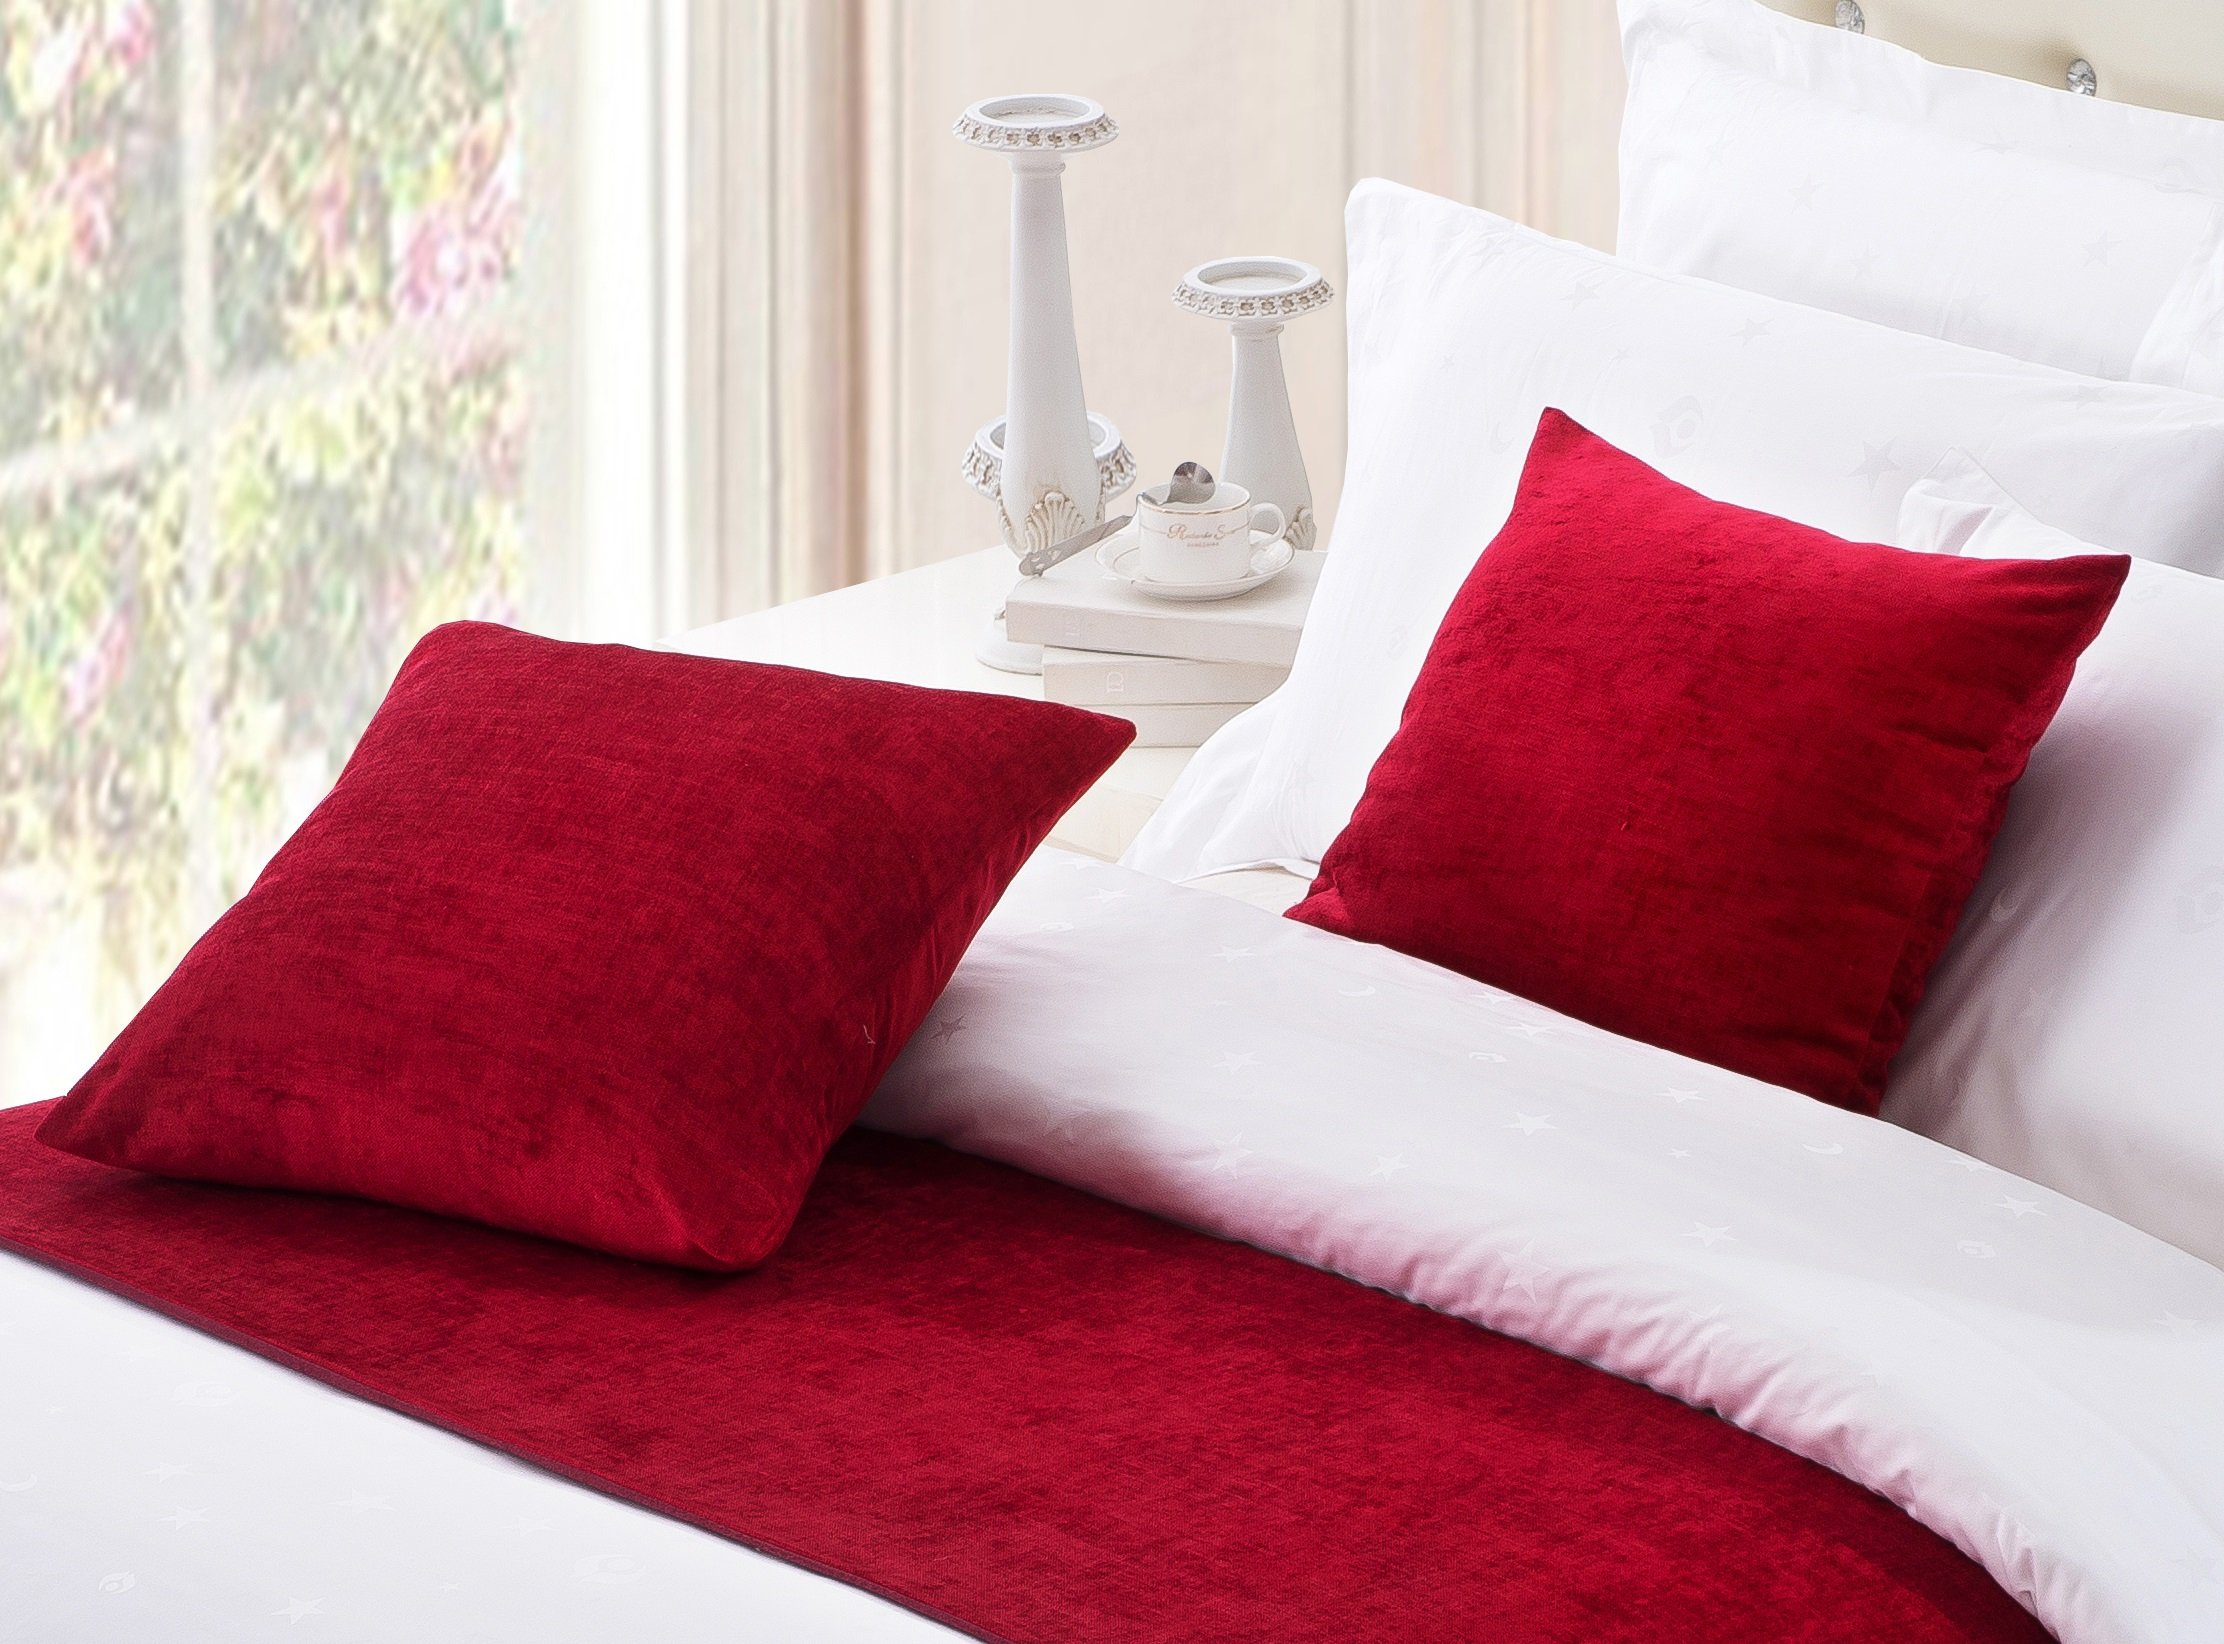 OSVINO 2 Pack European Style Solid Color Square 20''x20'' Chenille Throw Pillowcase Home Hotel Bed Sofa Pillow Sham Cushion Cover Décor Luxury Elegant, Red 20''x20''